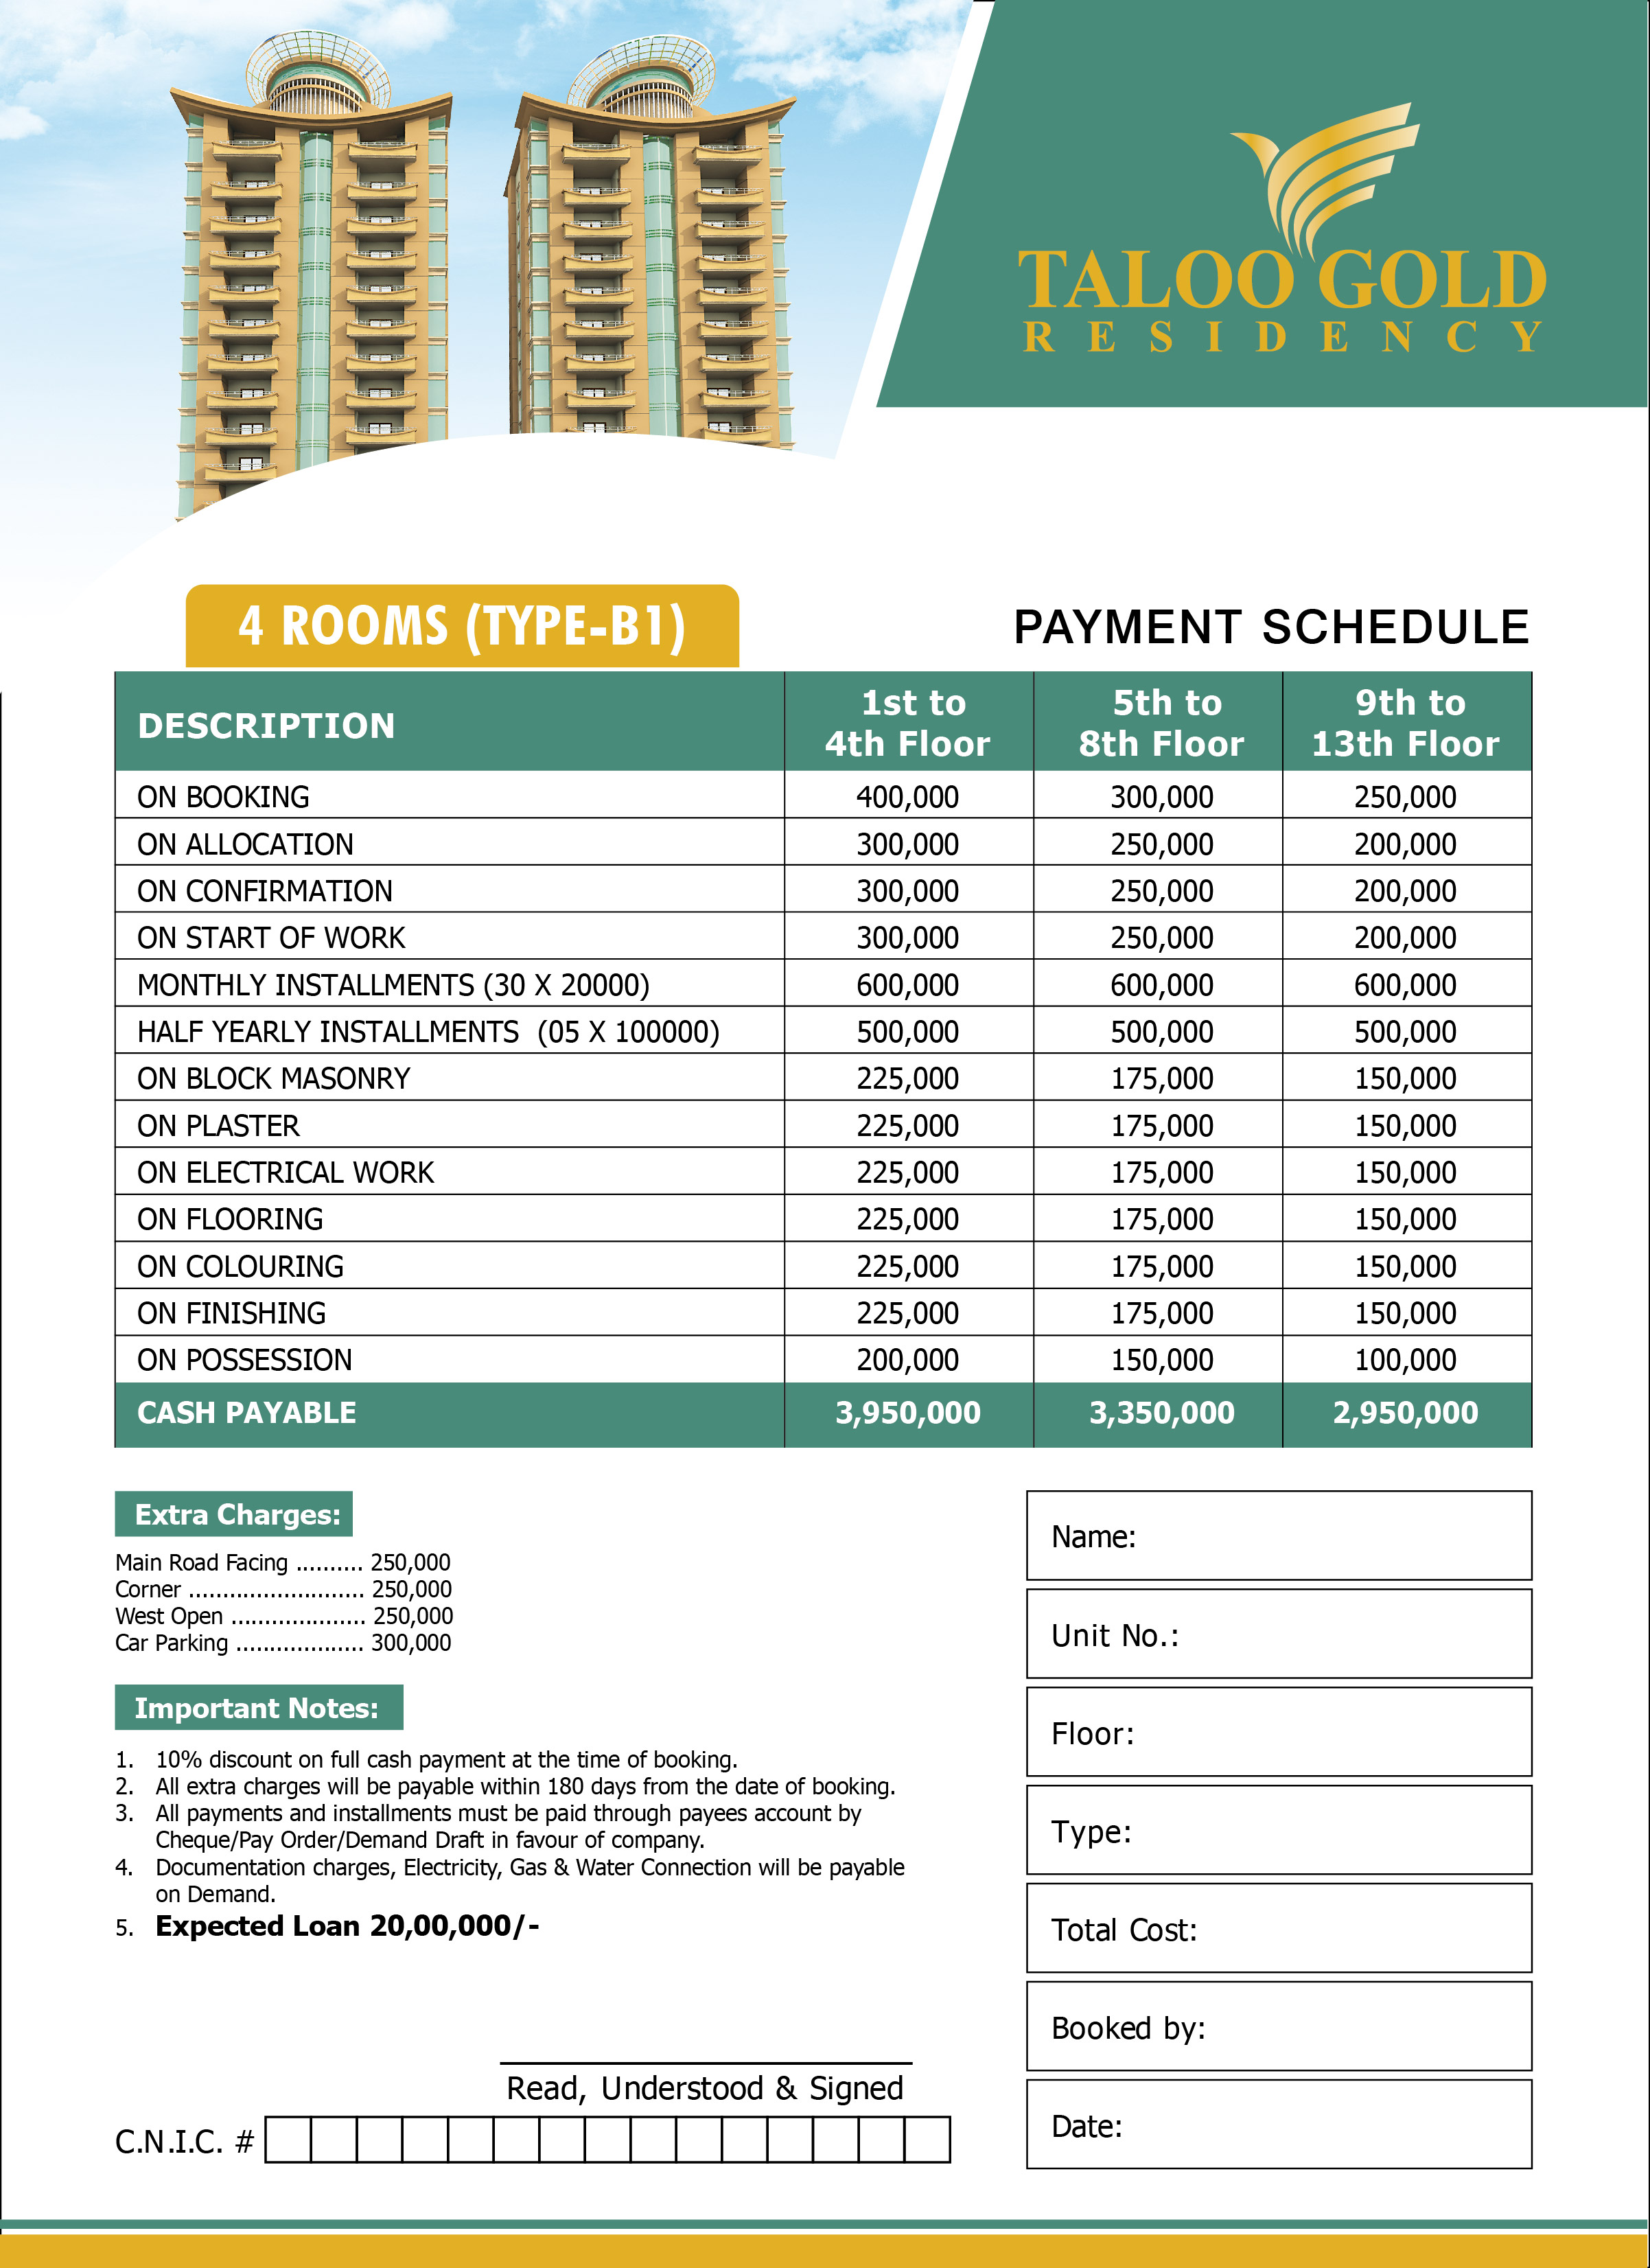 Taloo-Gold-Residency-Pay-Sch-4-ROOMS-Type-B1-30-3-2017-01